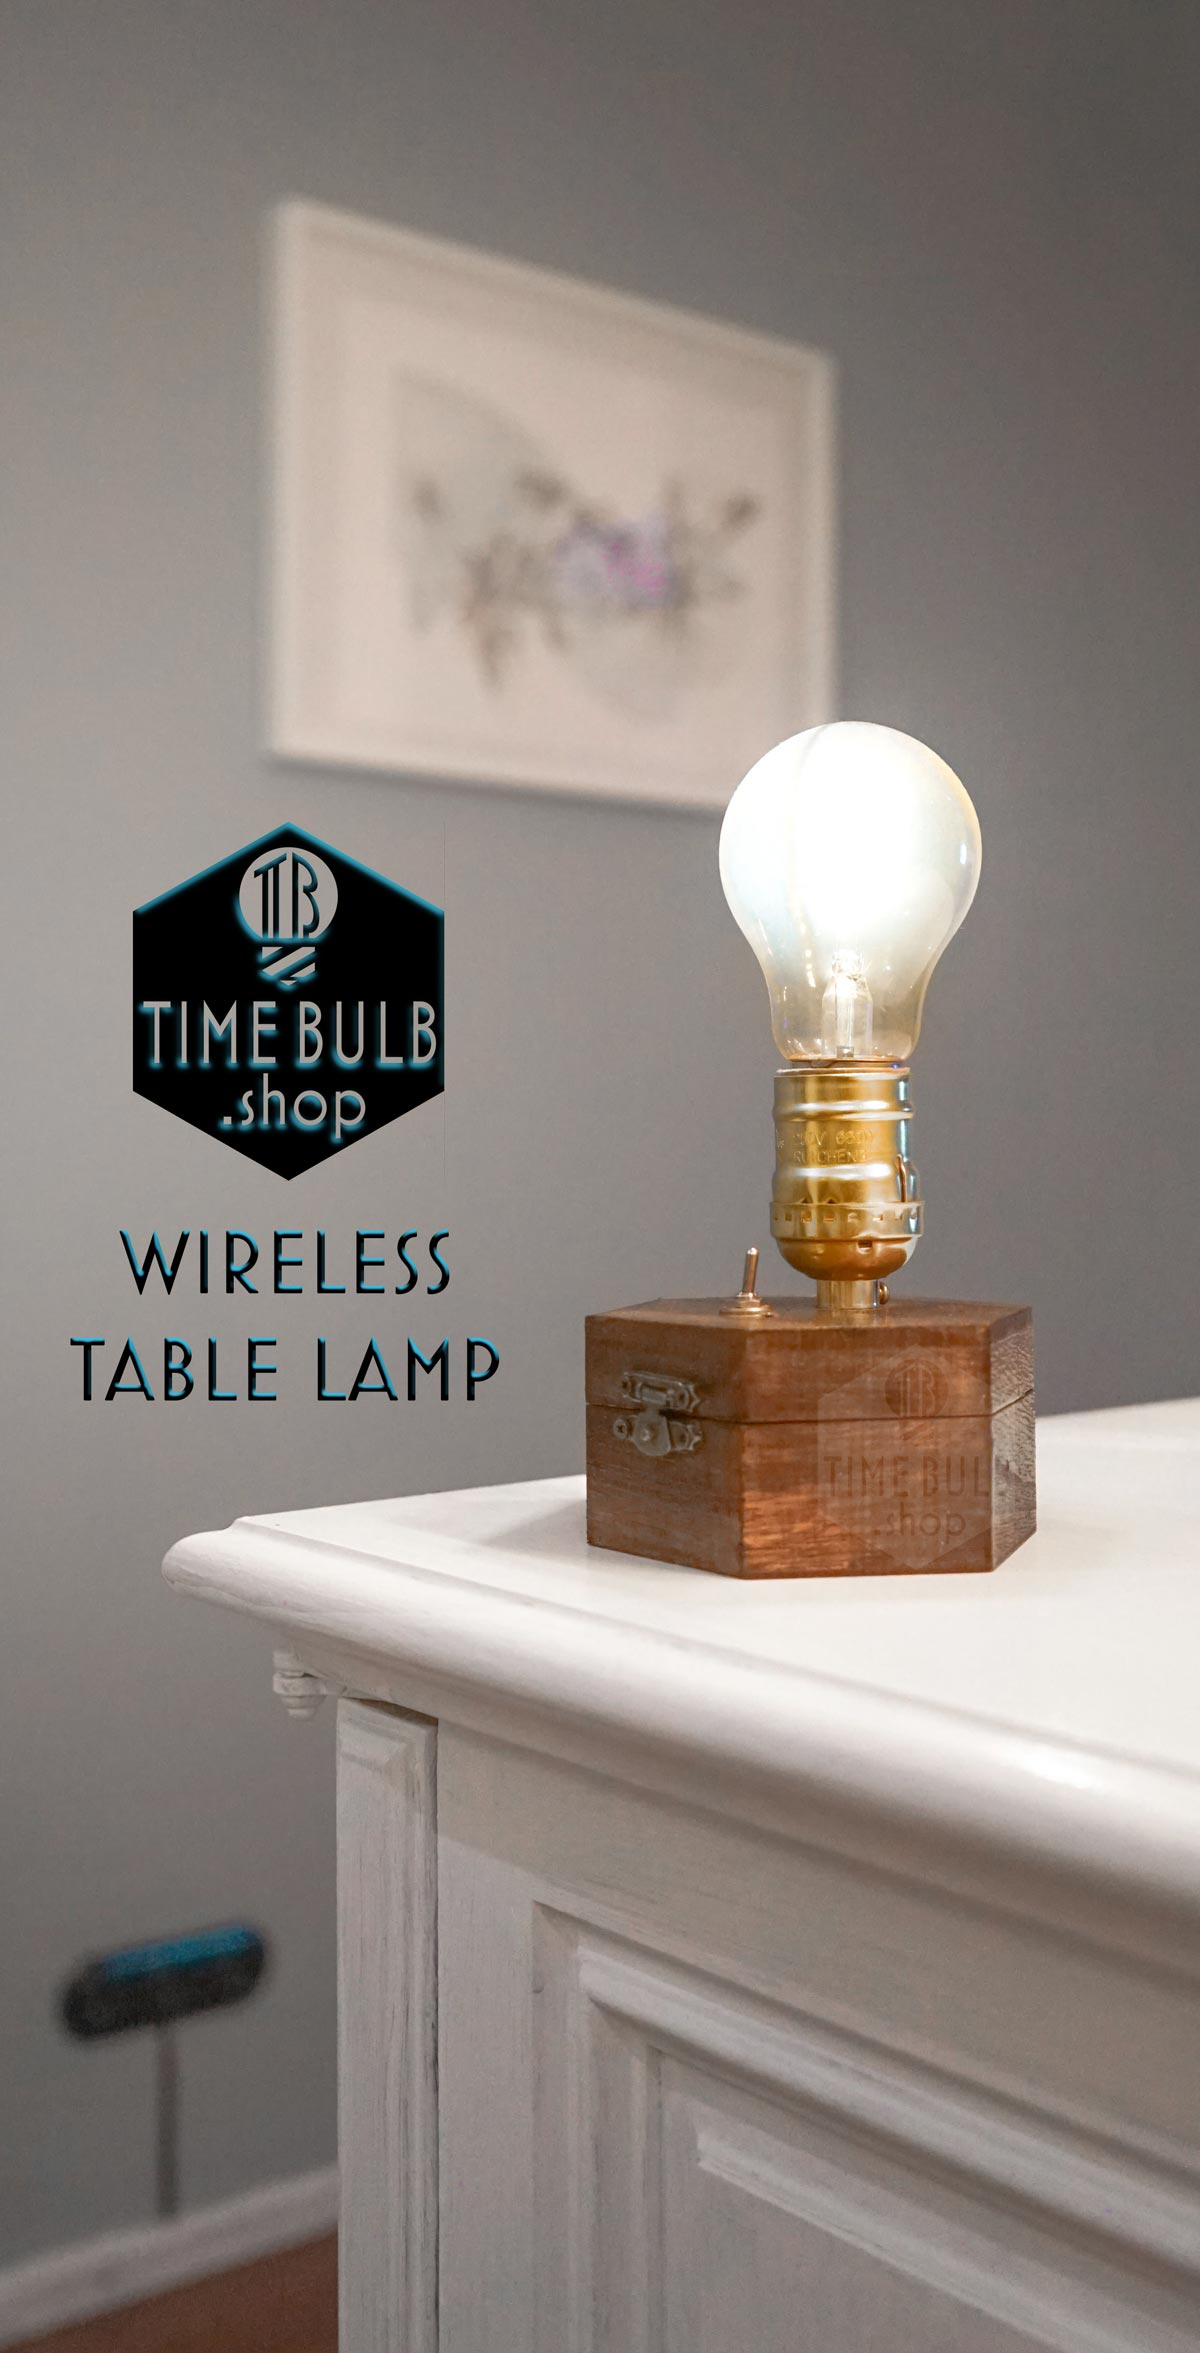 TimeBulb-cordless-wireless-table-lamp-battery-reading-light-tilmann-schlootz-garden-balcony-picnic-tent-wedding-decoration-trends-2019-2020-bridetobe-bride2020_vintage-eclectic-interior-design